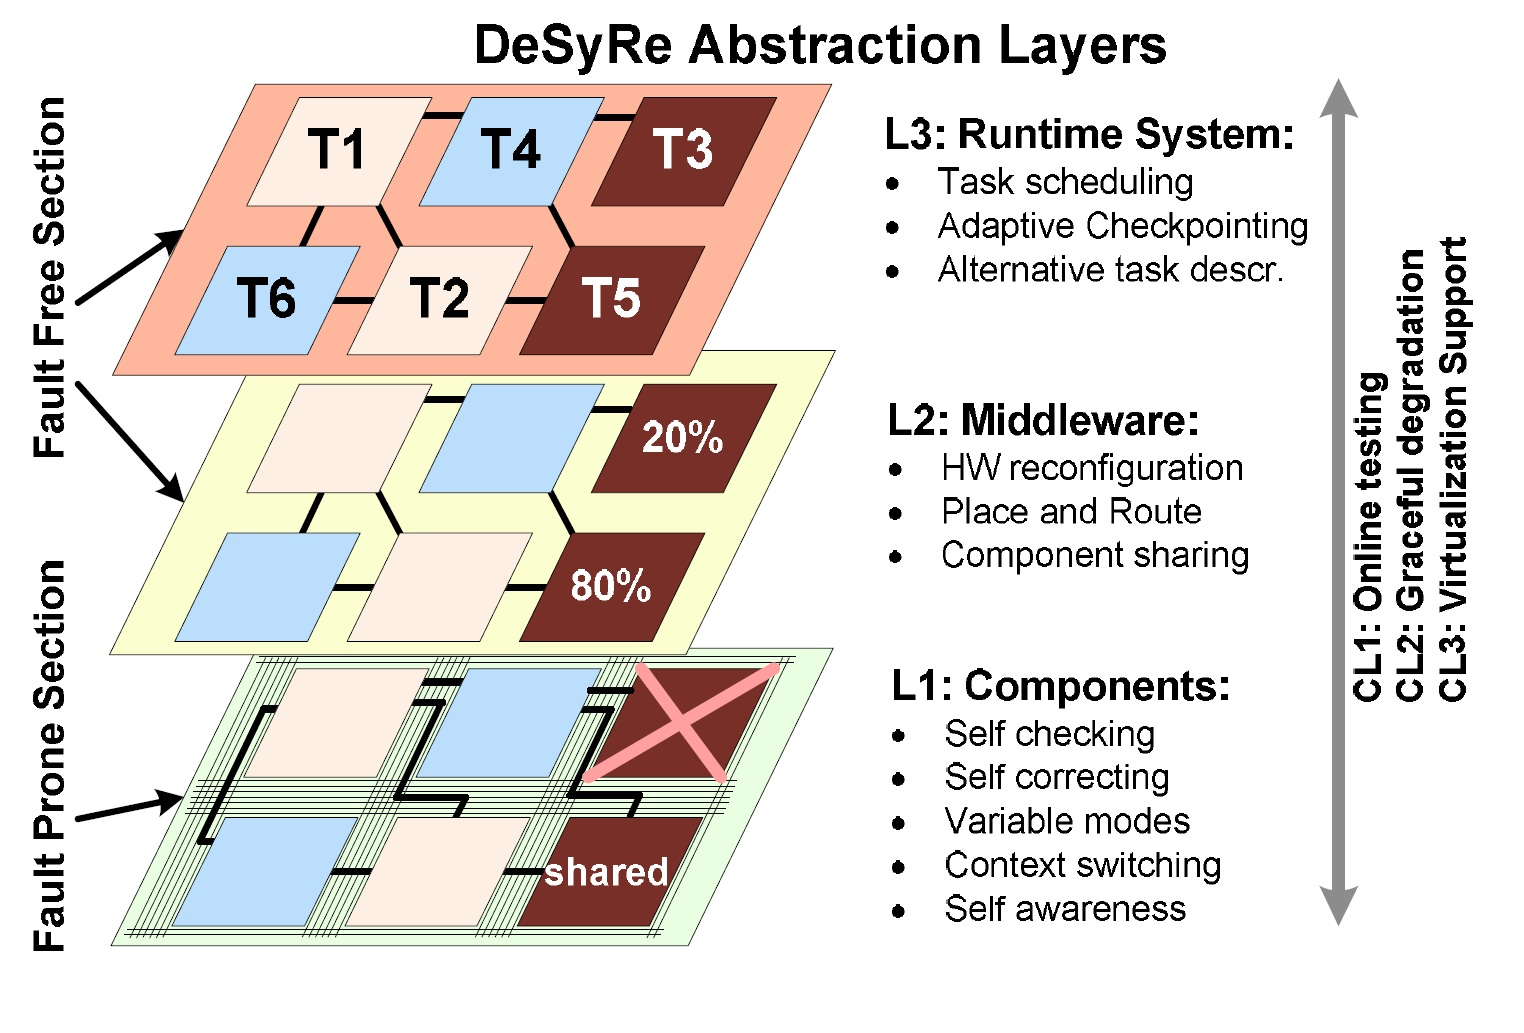 Desyre_abstraction_layers